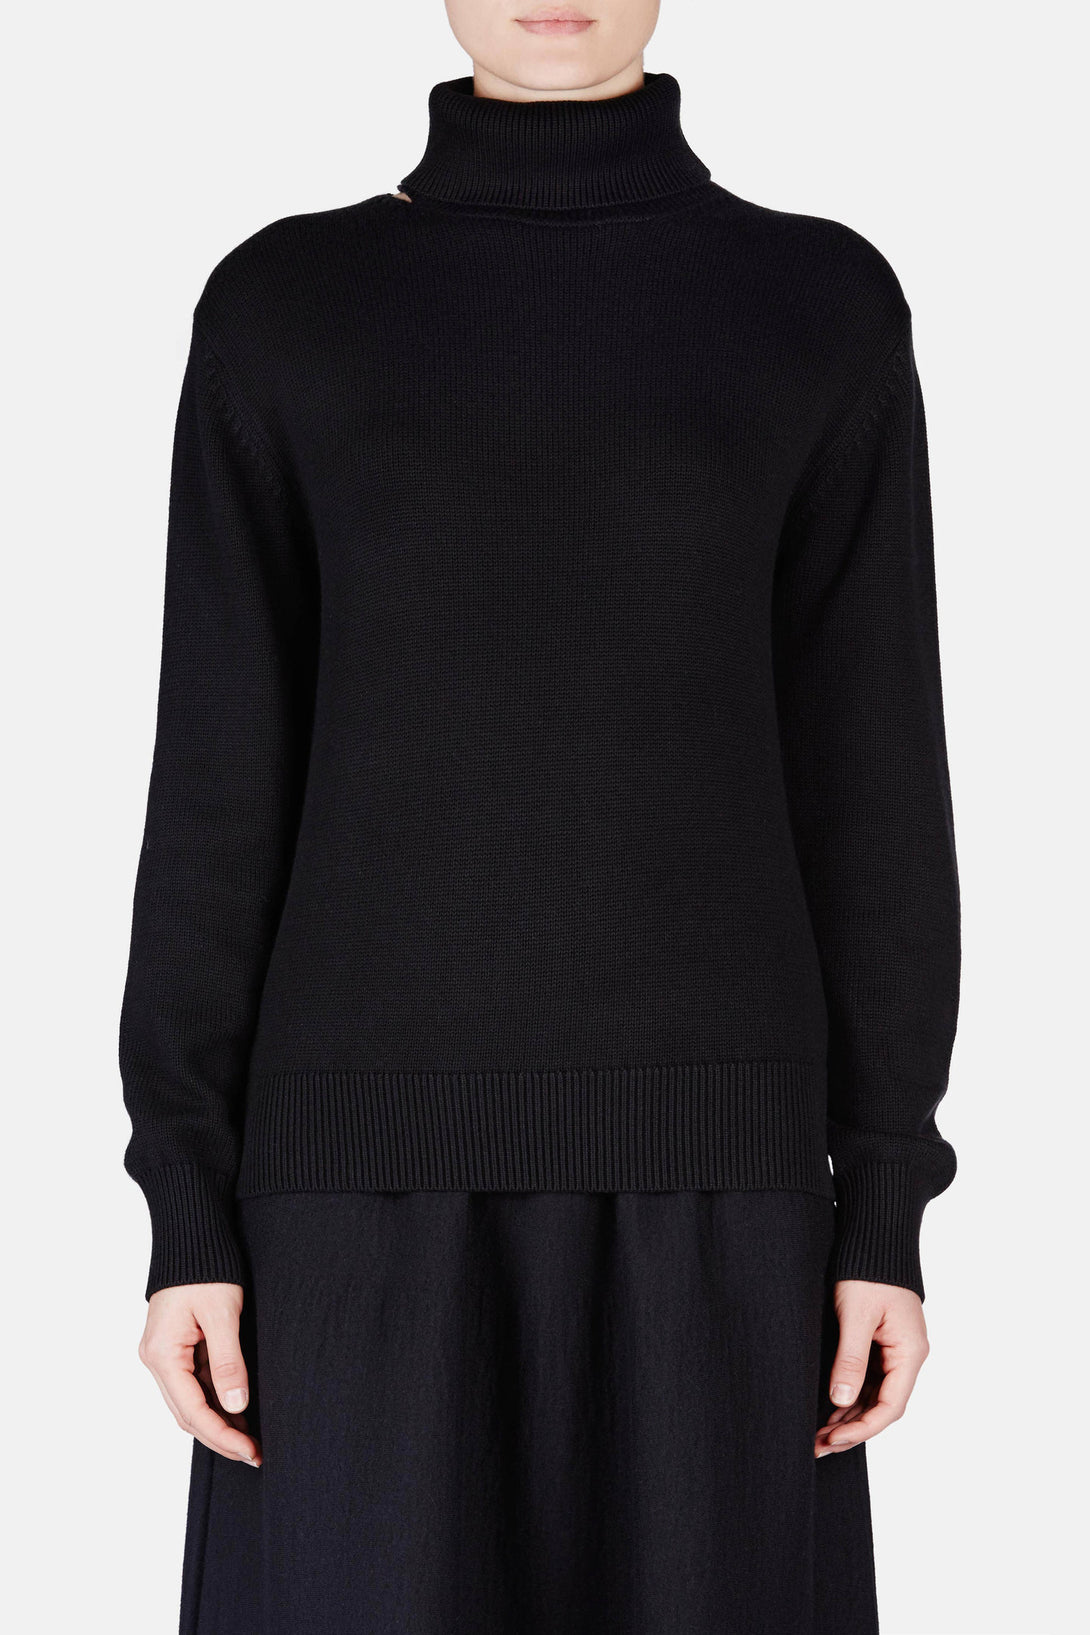 Back Slash Turtleneck - Black